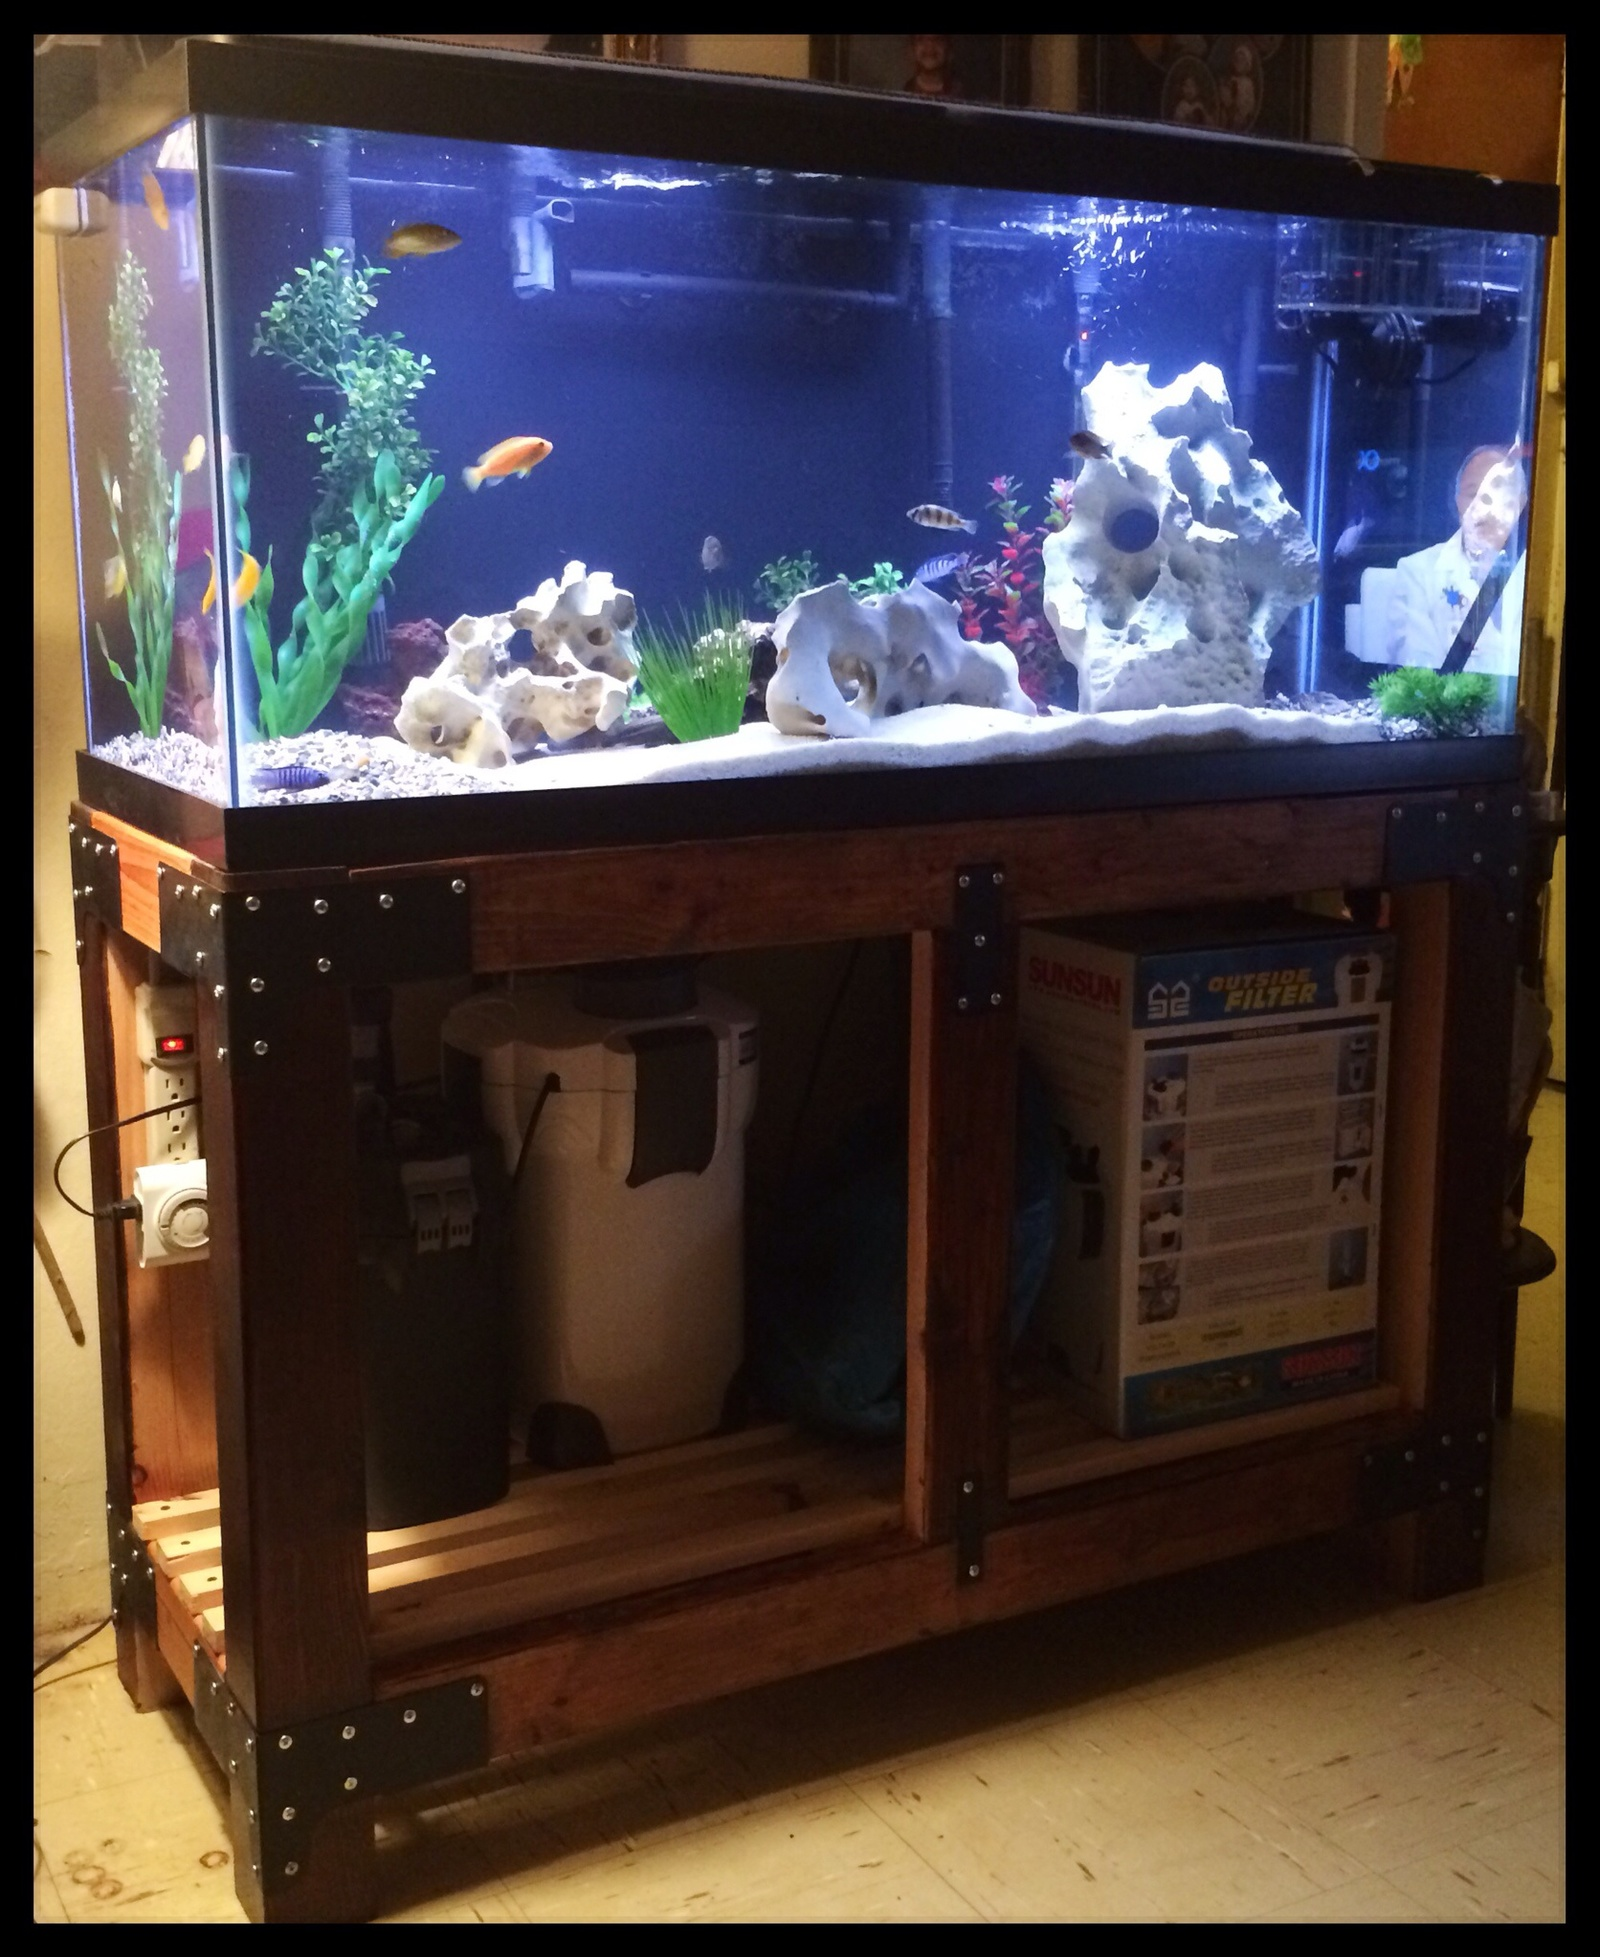 The full aquarium 75 gallon upgrade | by Juan P